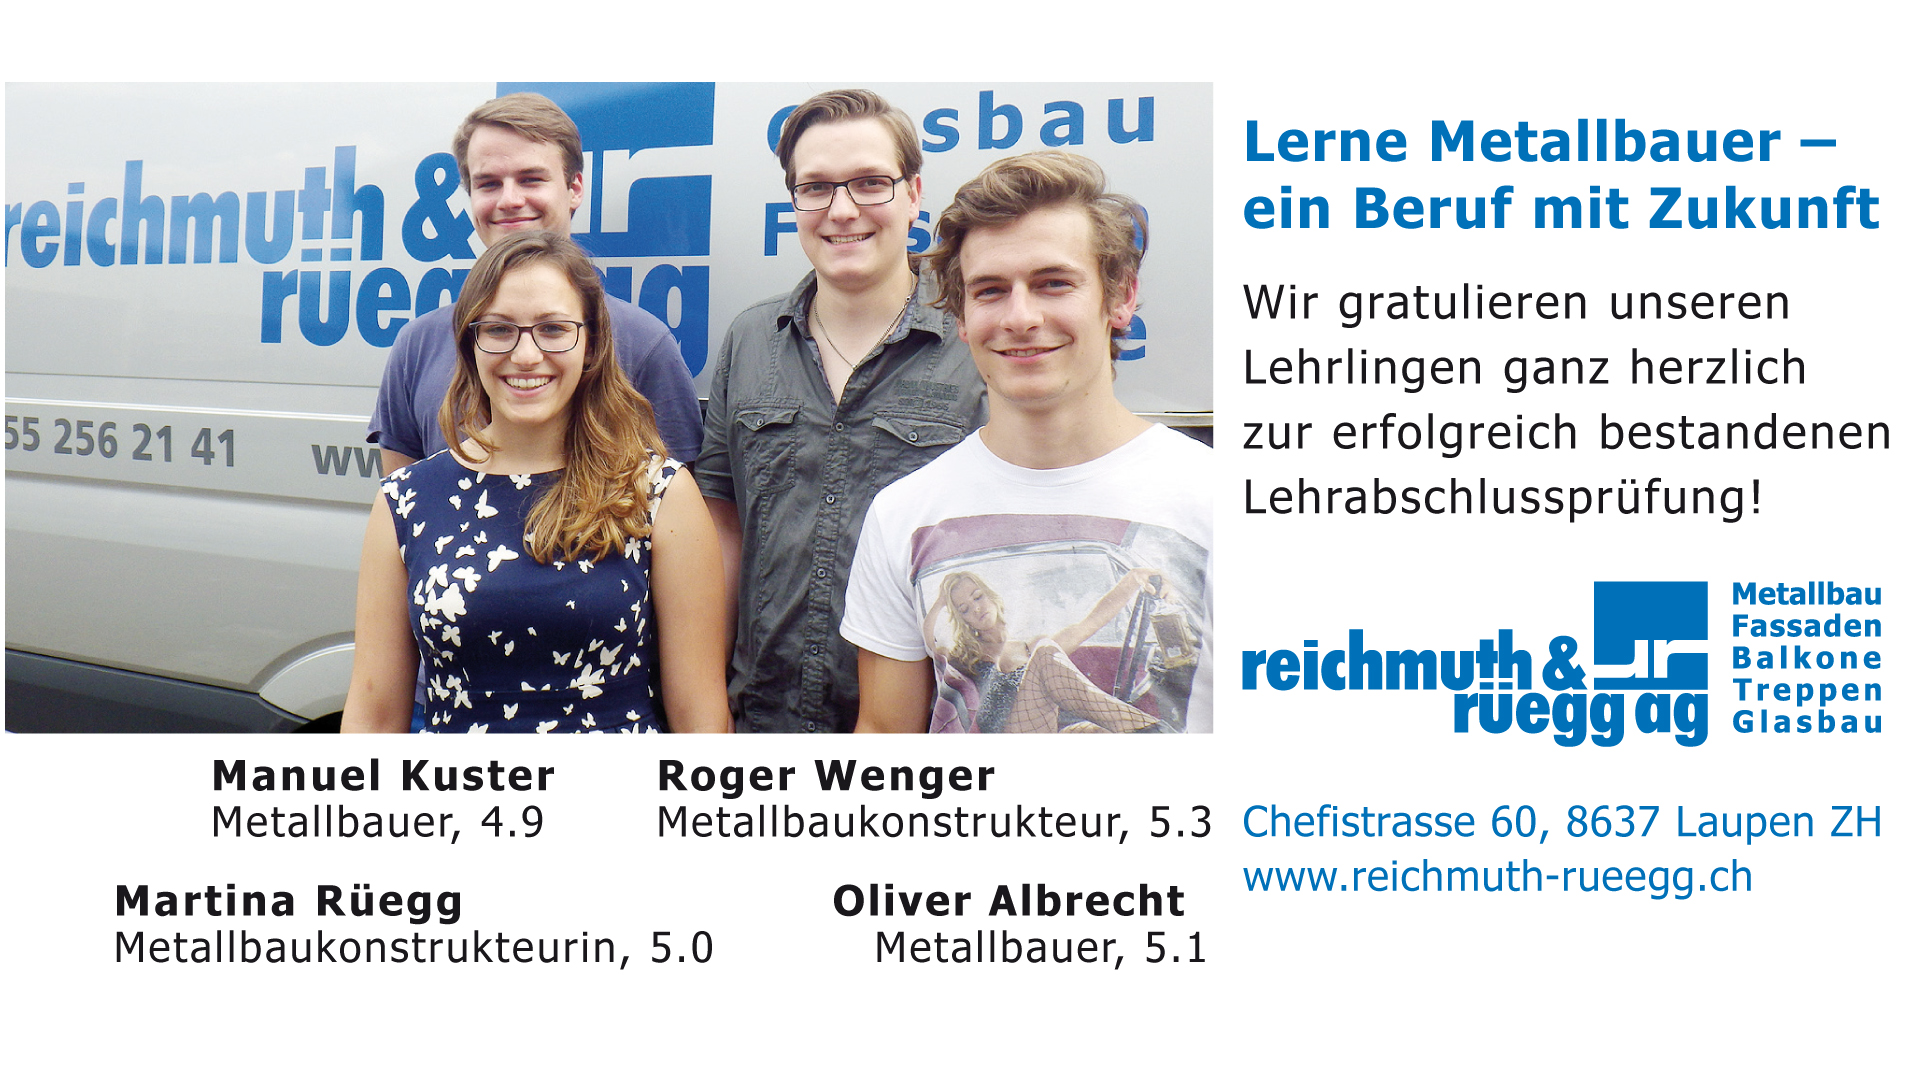 <a href=&quot;http://www.reichmuth-rueegg.ch/&quot; target=&quot;_blank&quot;>www.reichmuth-rueegg.ch/</a>